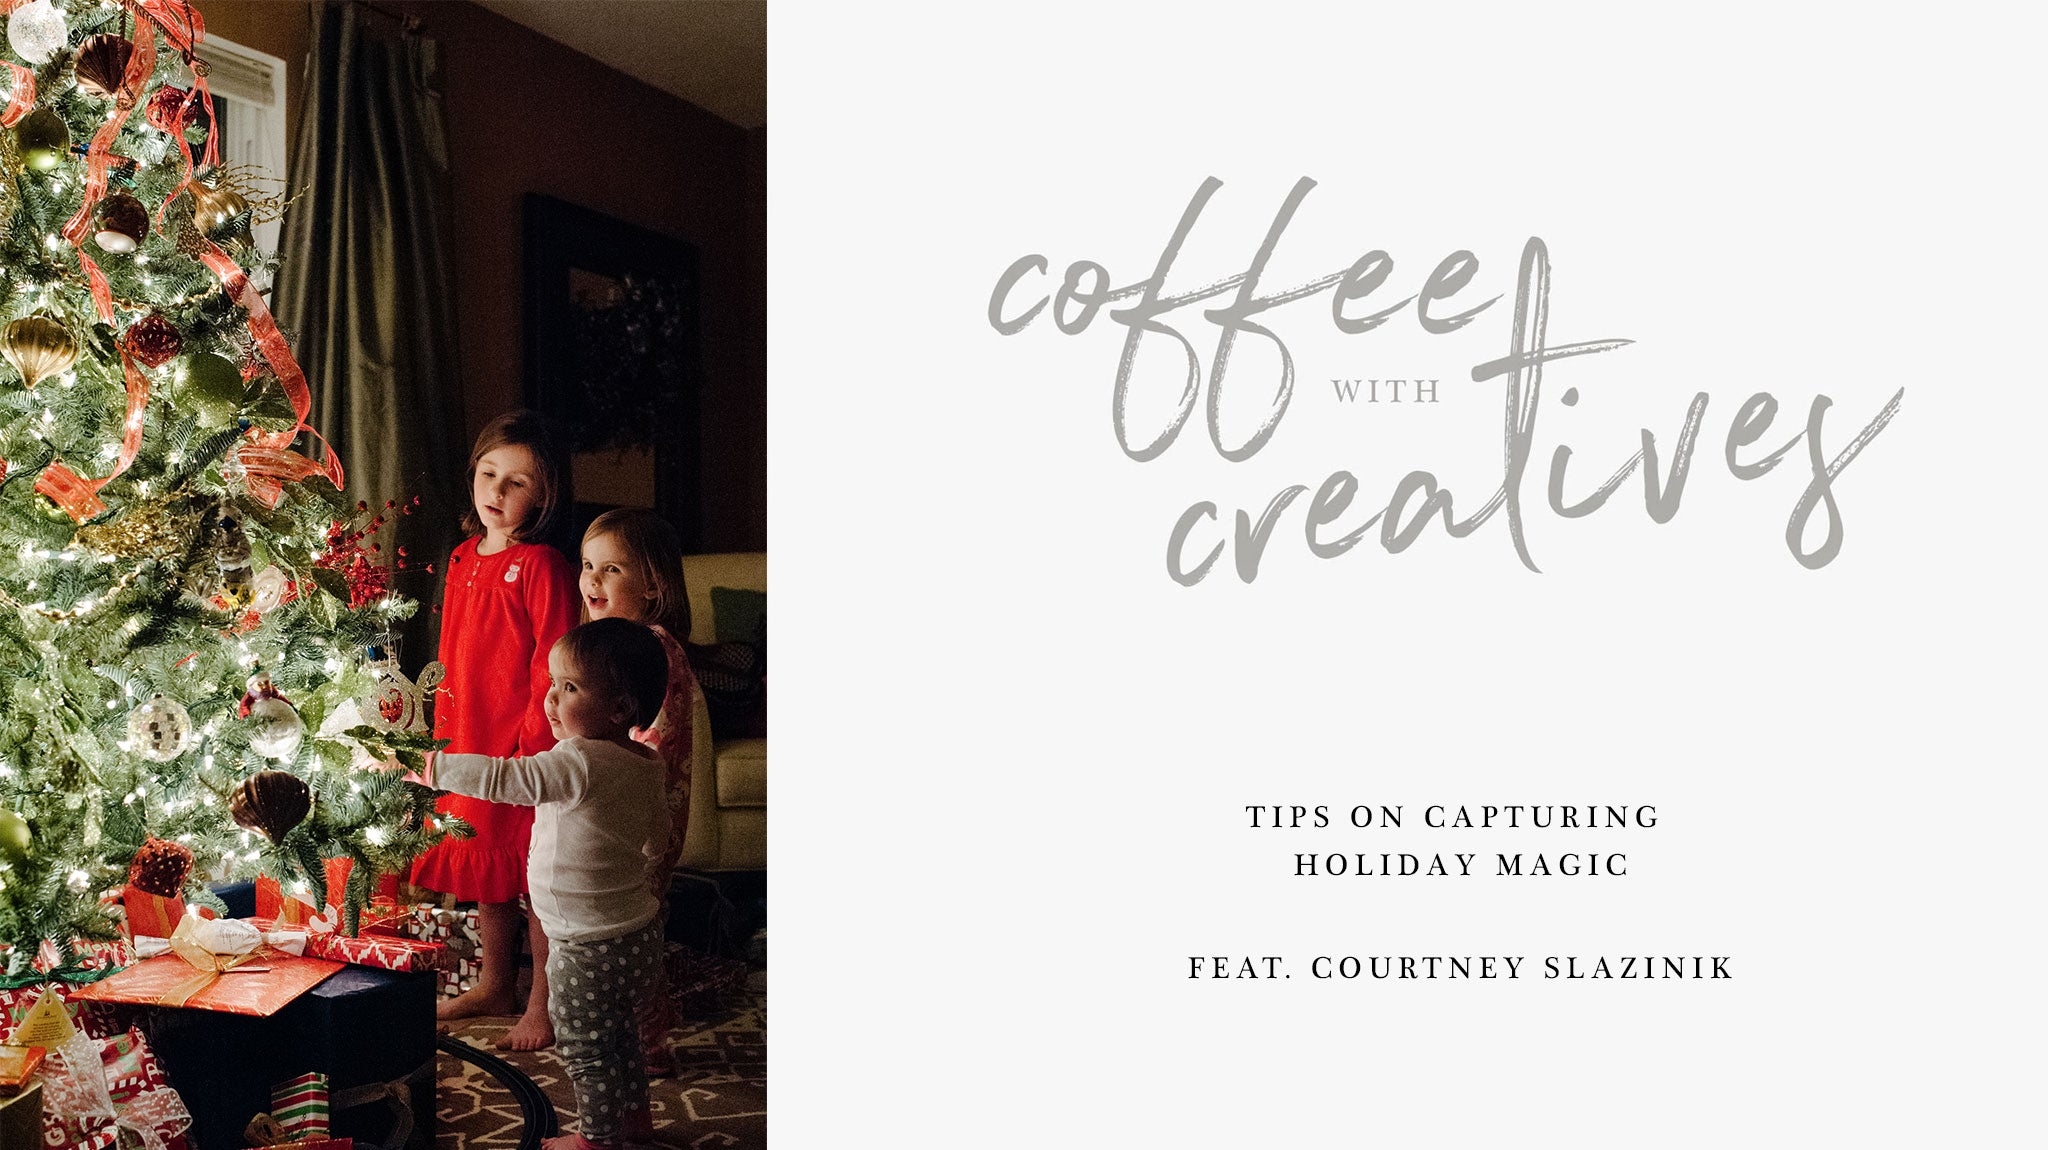 FOTO Blog | Capturing Holiday Magic with Courtney Slazinik